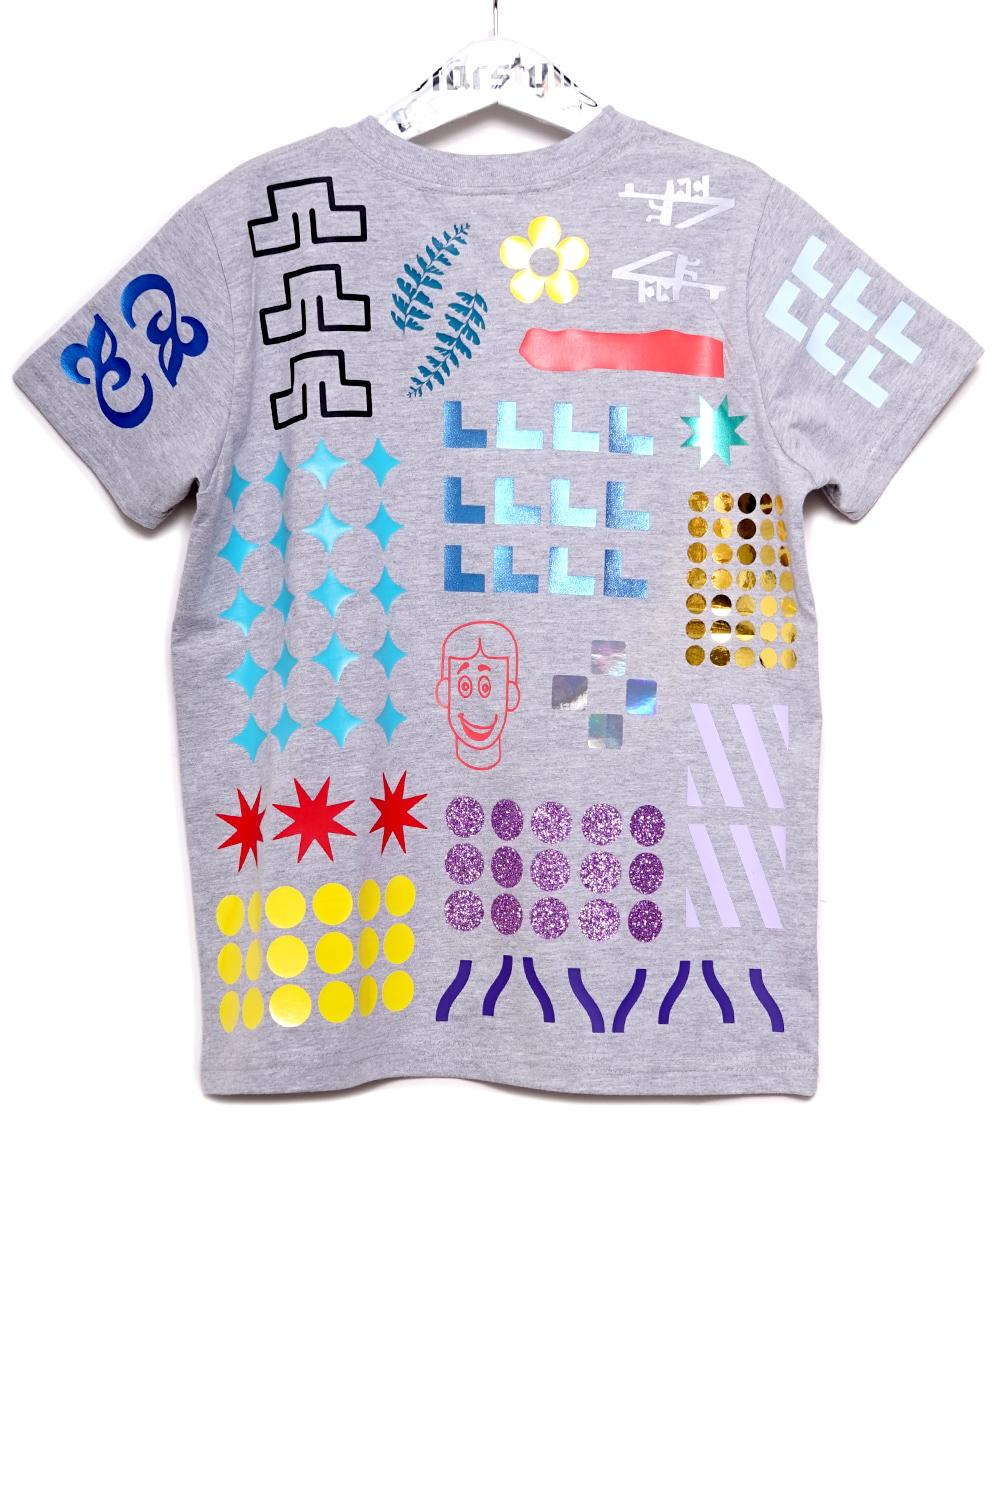 Everything Allover T-Shirt Kids - 5